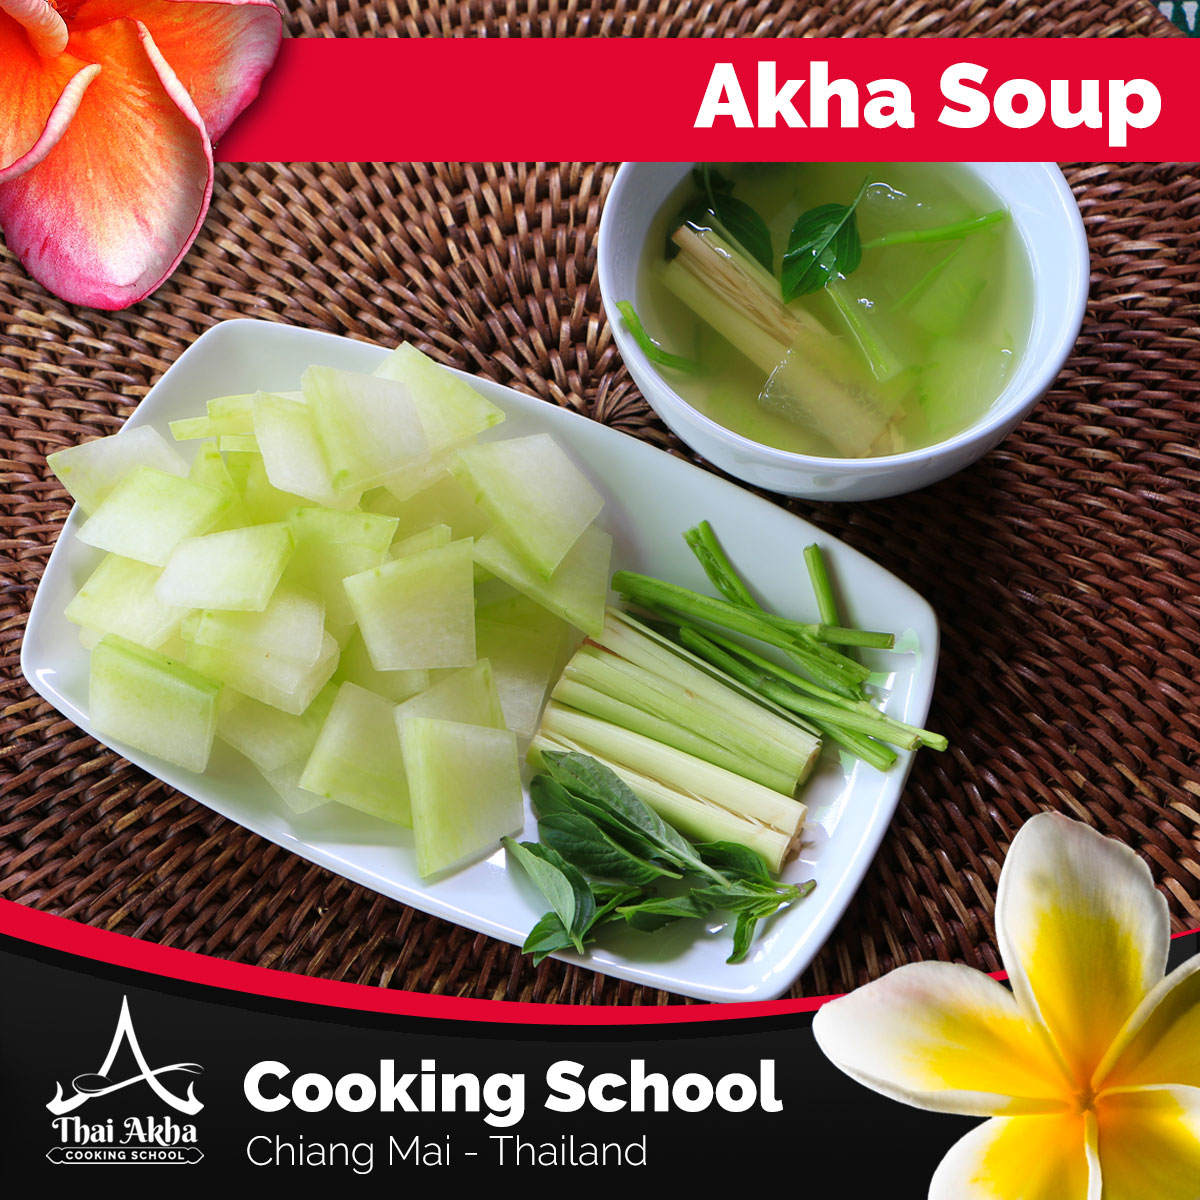 Akha Soup - Akha Kitchen - Akha Recipes - Thai Akha Kitchen